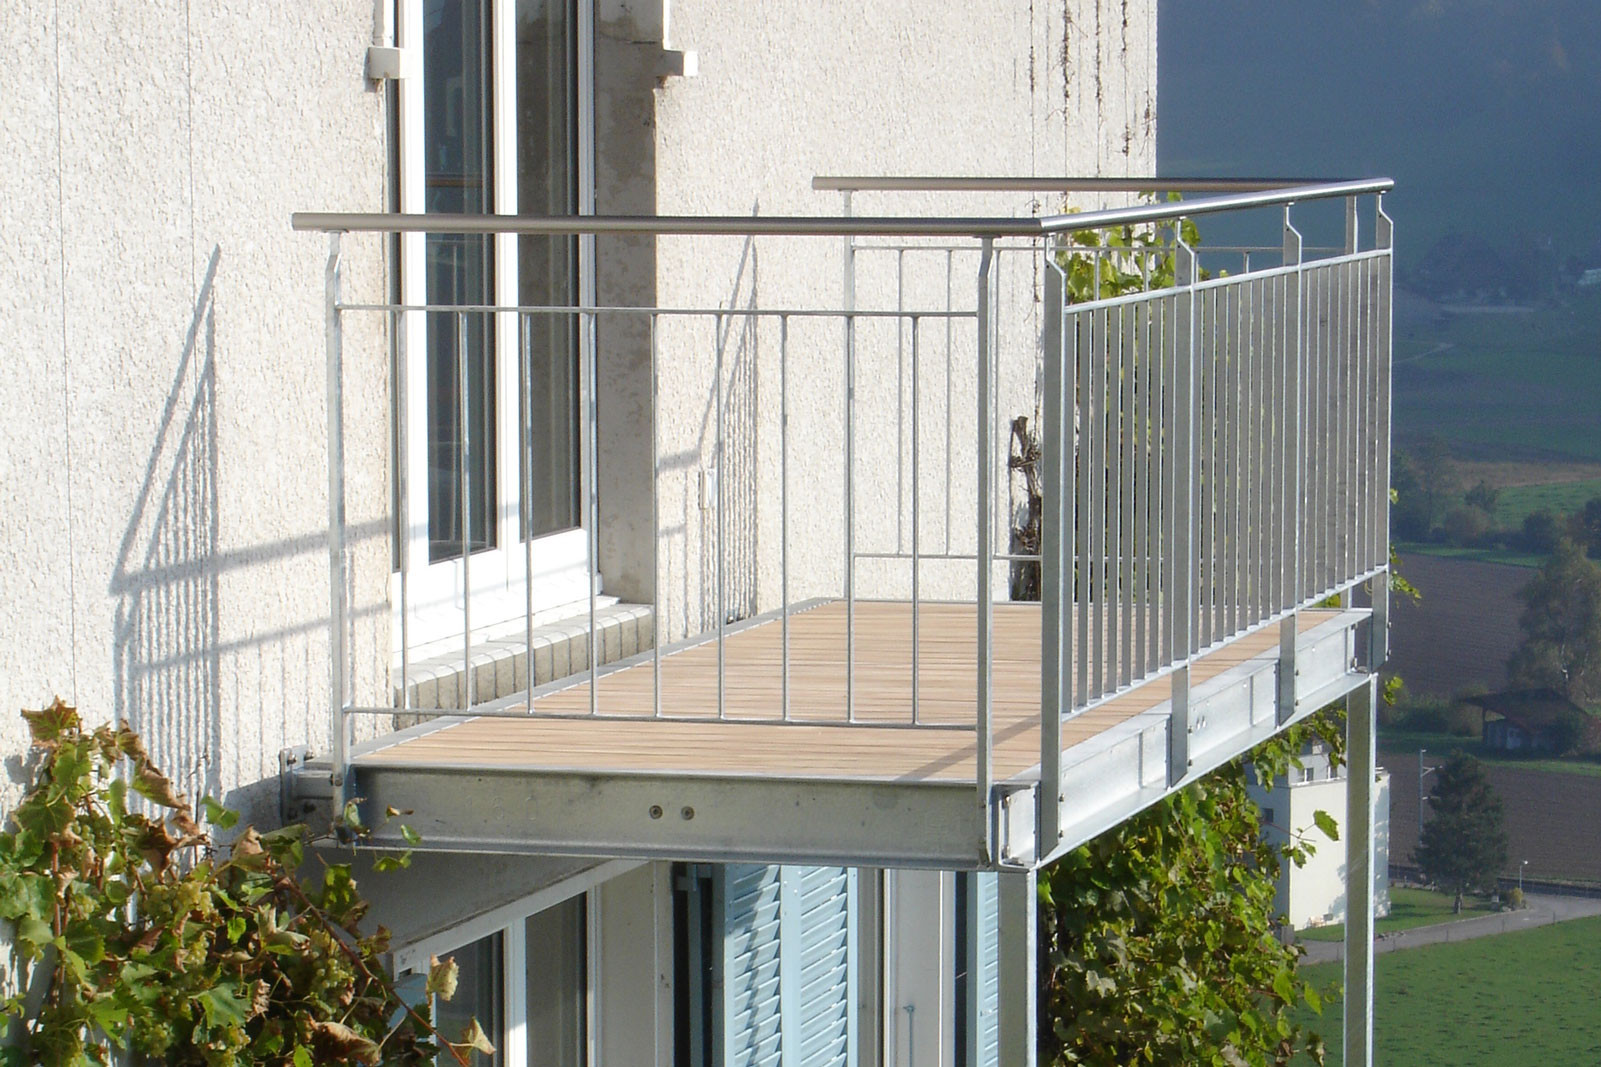 Apartment building in Bern, Architekt Metallbau AG, Stettlen